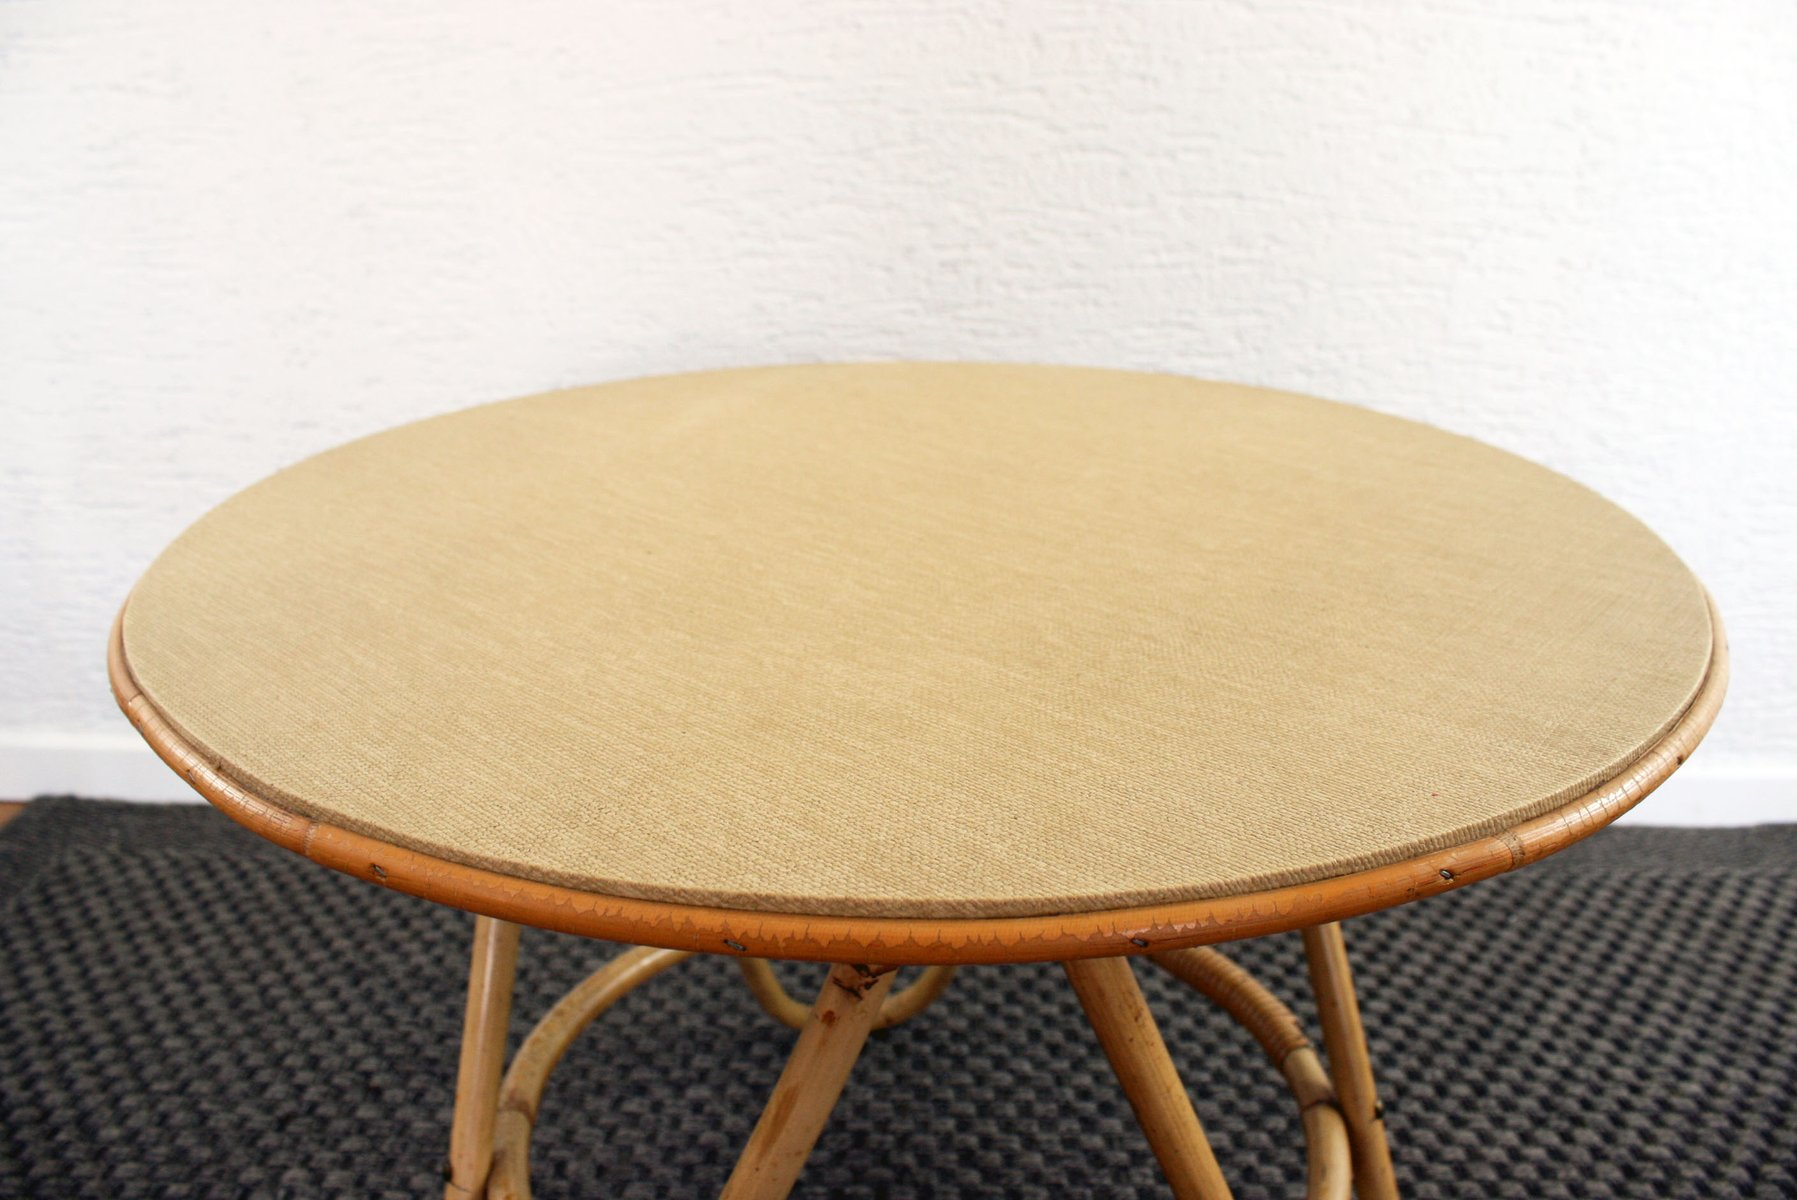 Ehrf Rchtige Table Basse Rotin Id Es De Conception De Table Basse # Table Basse Ronde Hippie